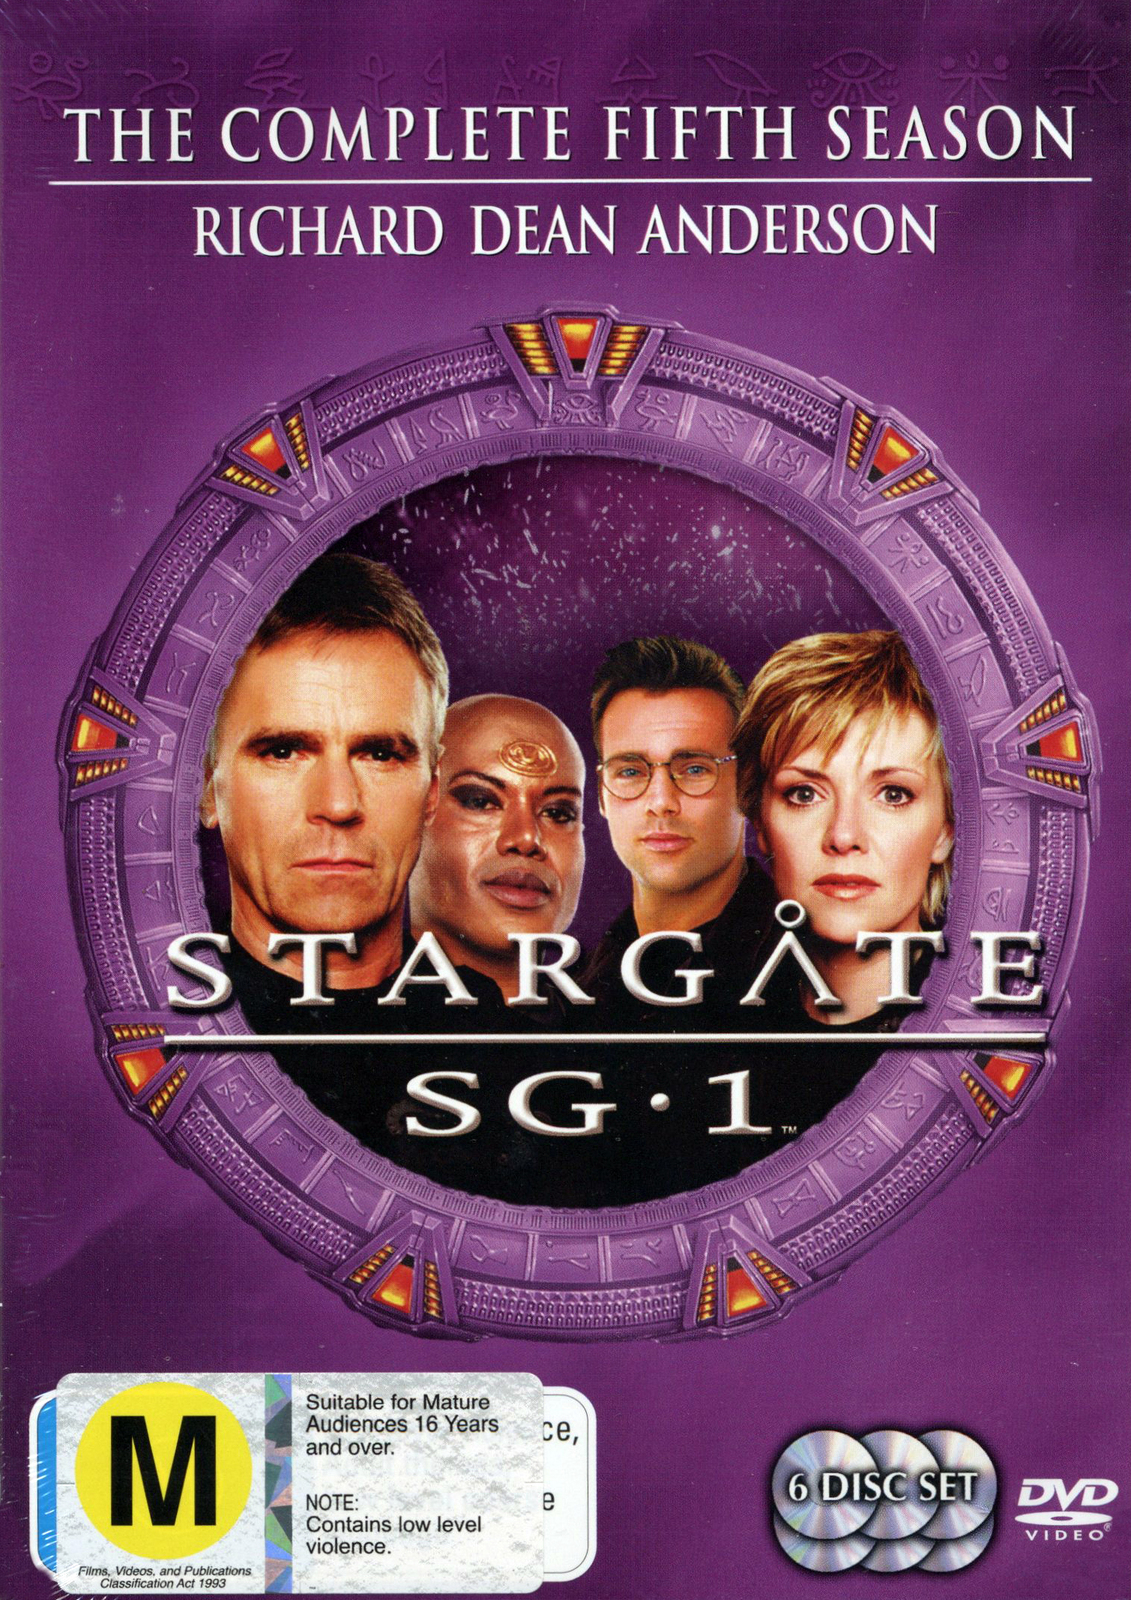 Stargate SG-1 - Season 5 (6 Disc Set) (New Packaging) on DVD image